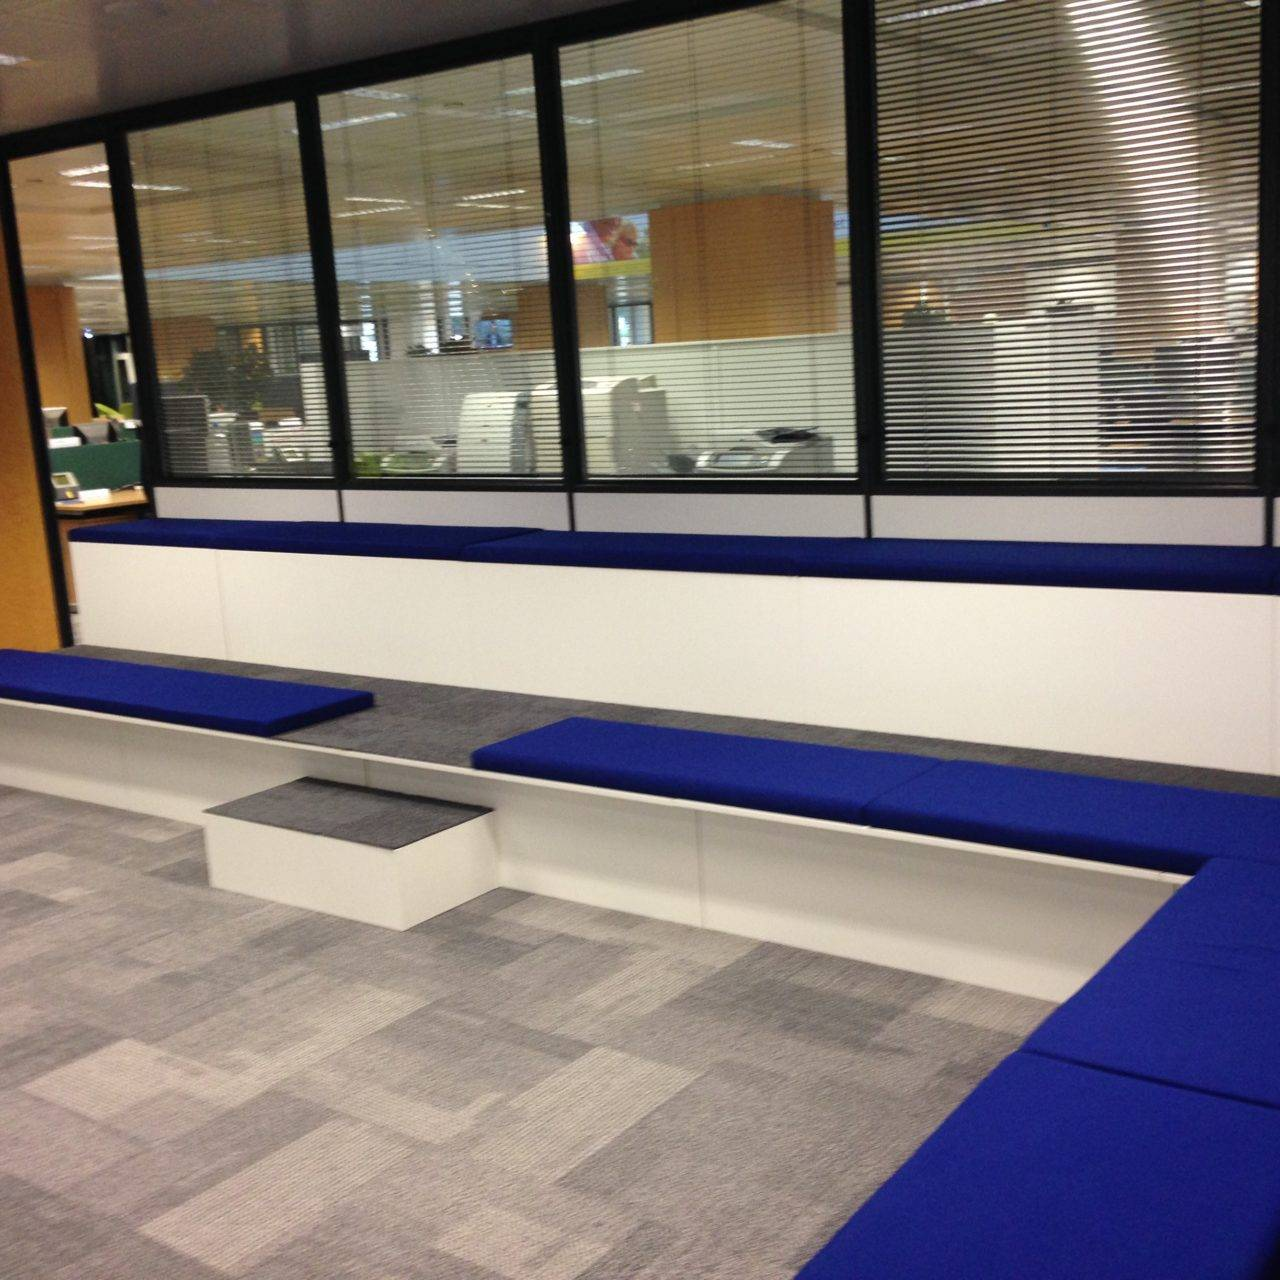 Specialist Meeting Room Fitted Out